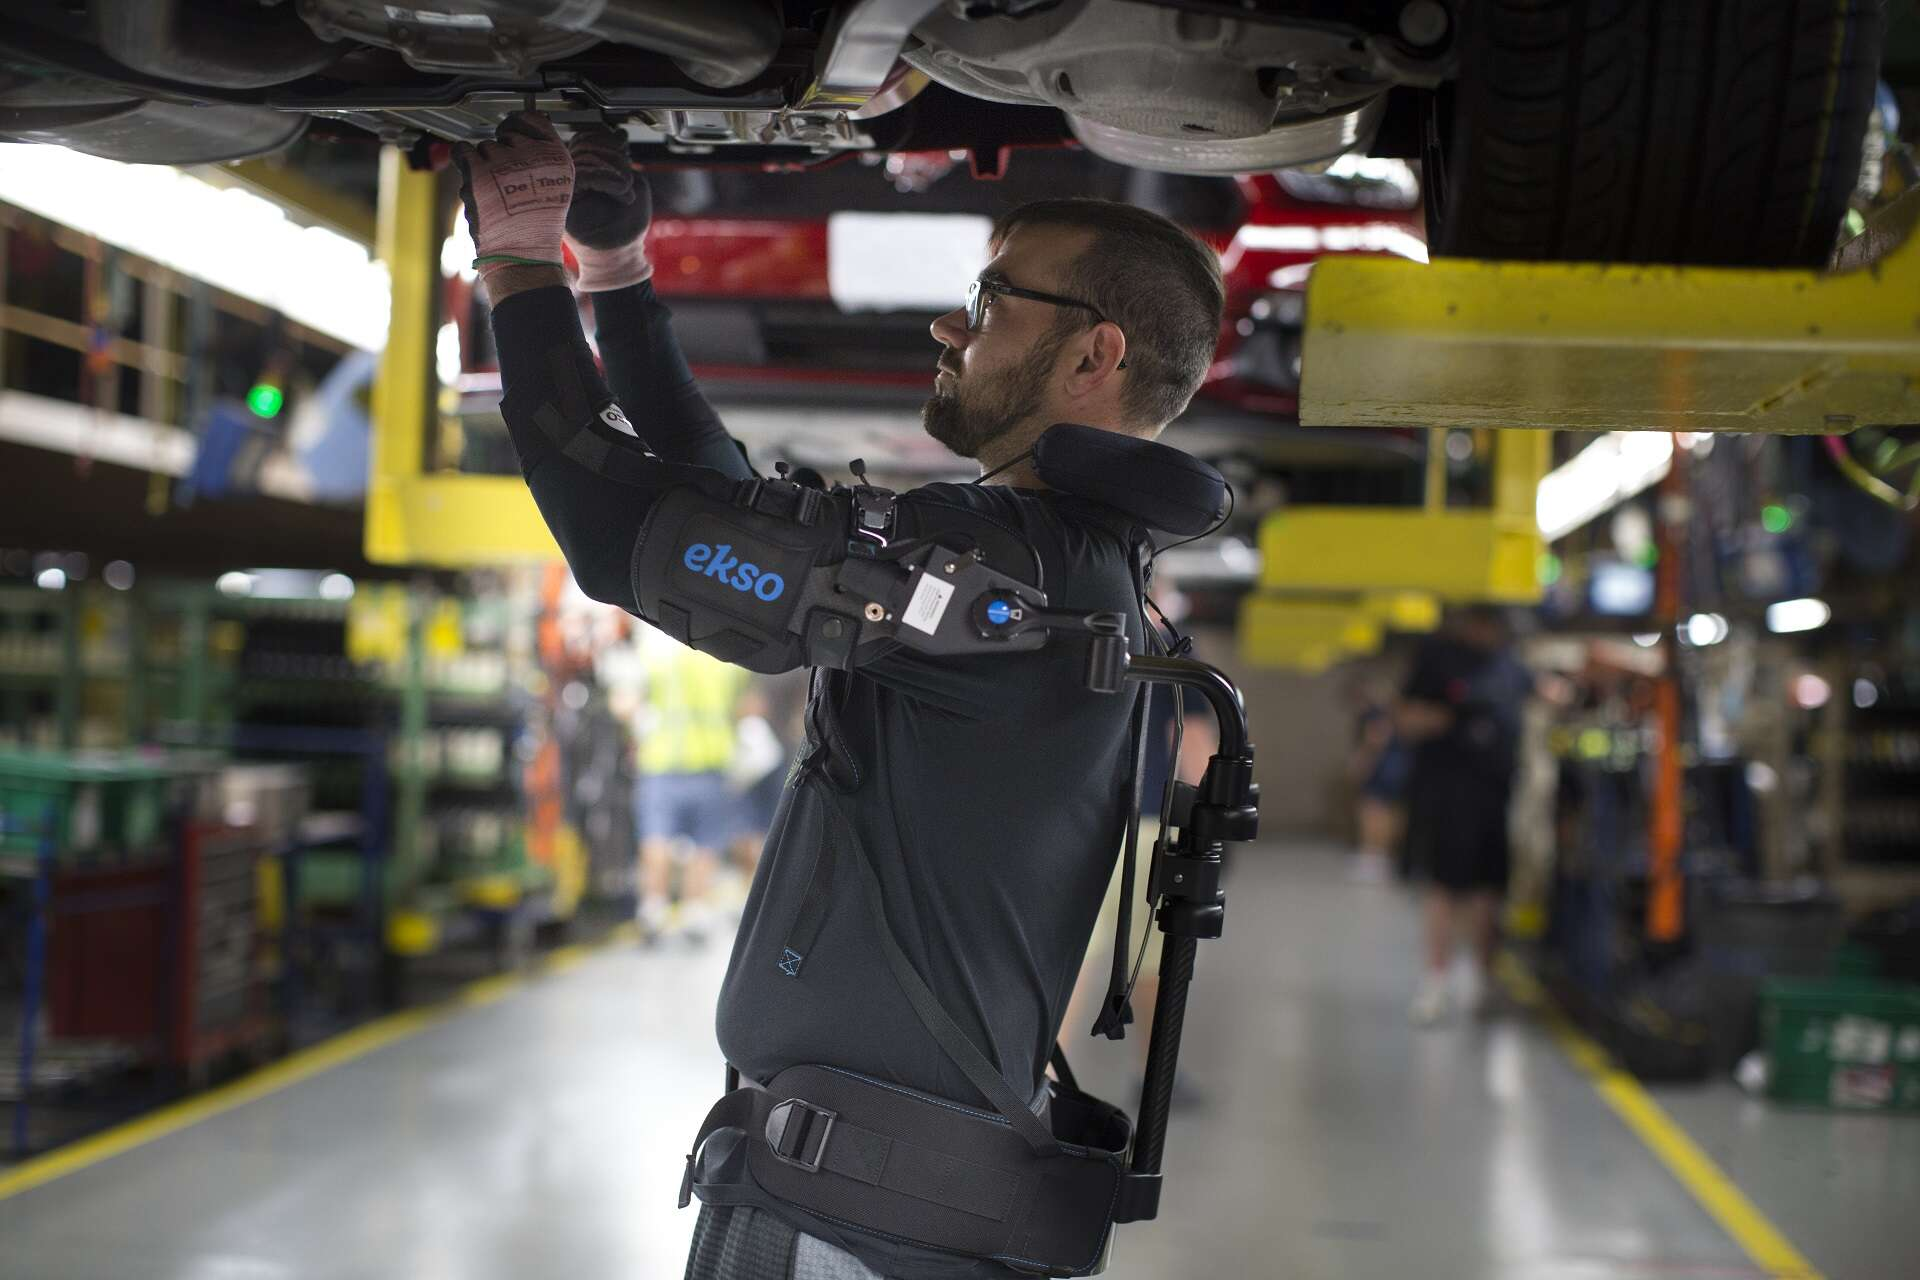 Ford Rolls Out Robot-Like Exoskeleton to Assembly Line Workers Worldwide